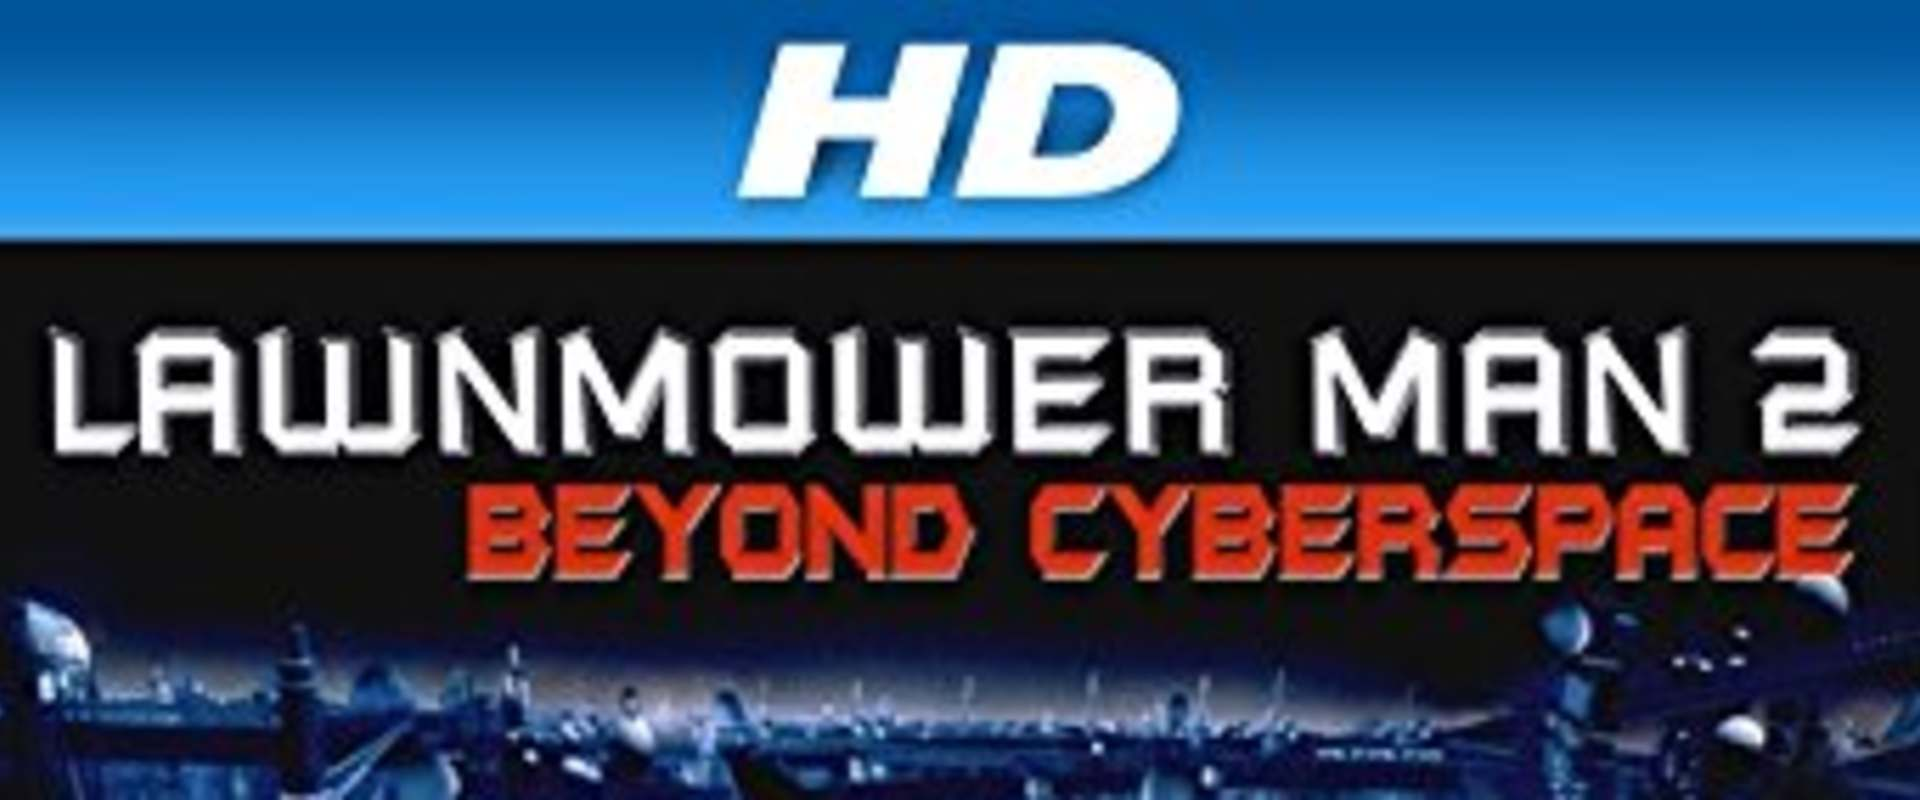 Lawnmower Man 2: Beyond Cyberspace background 2